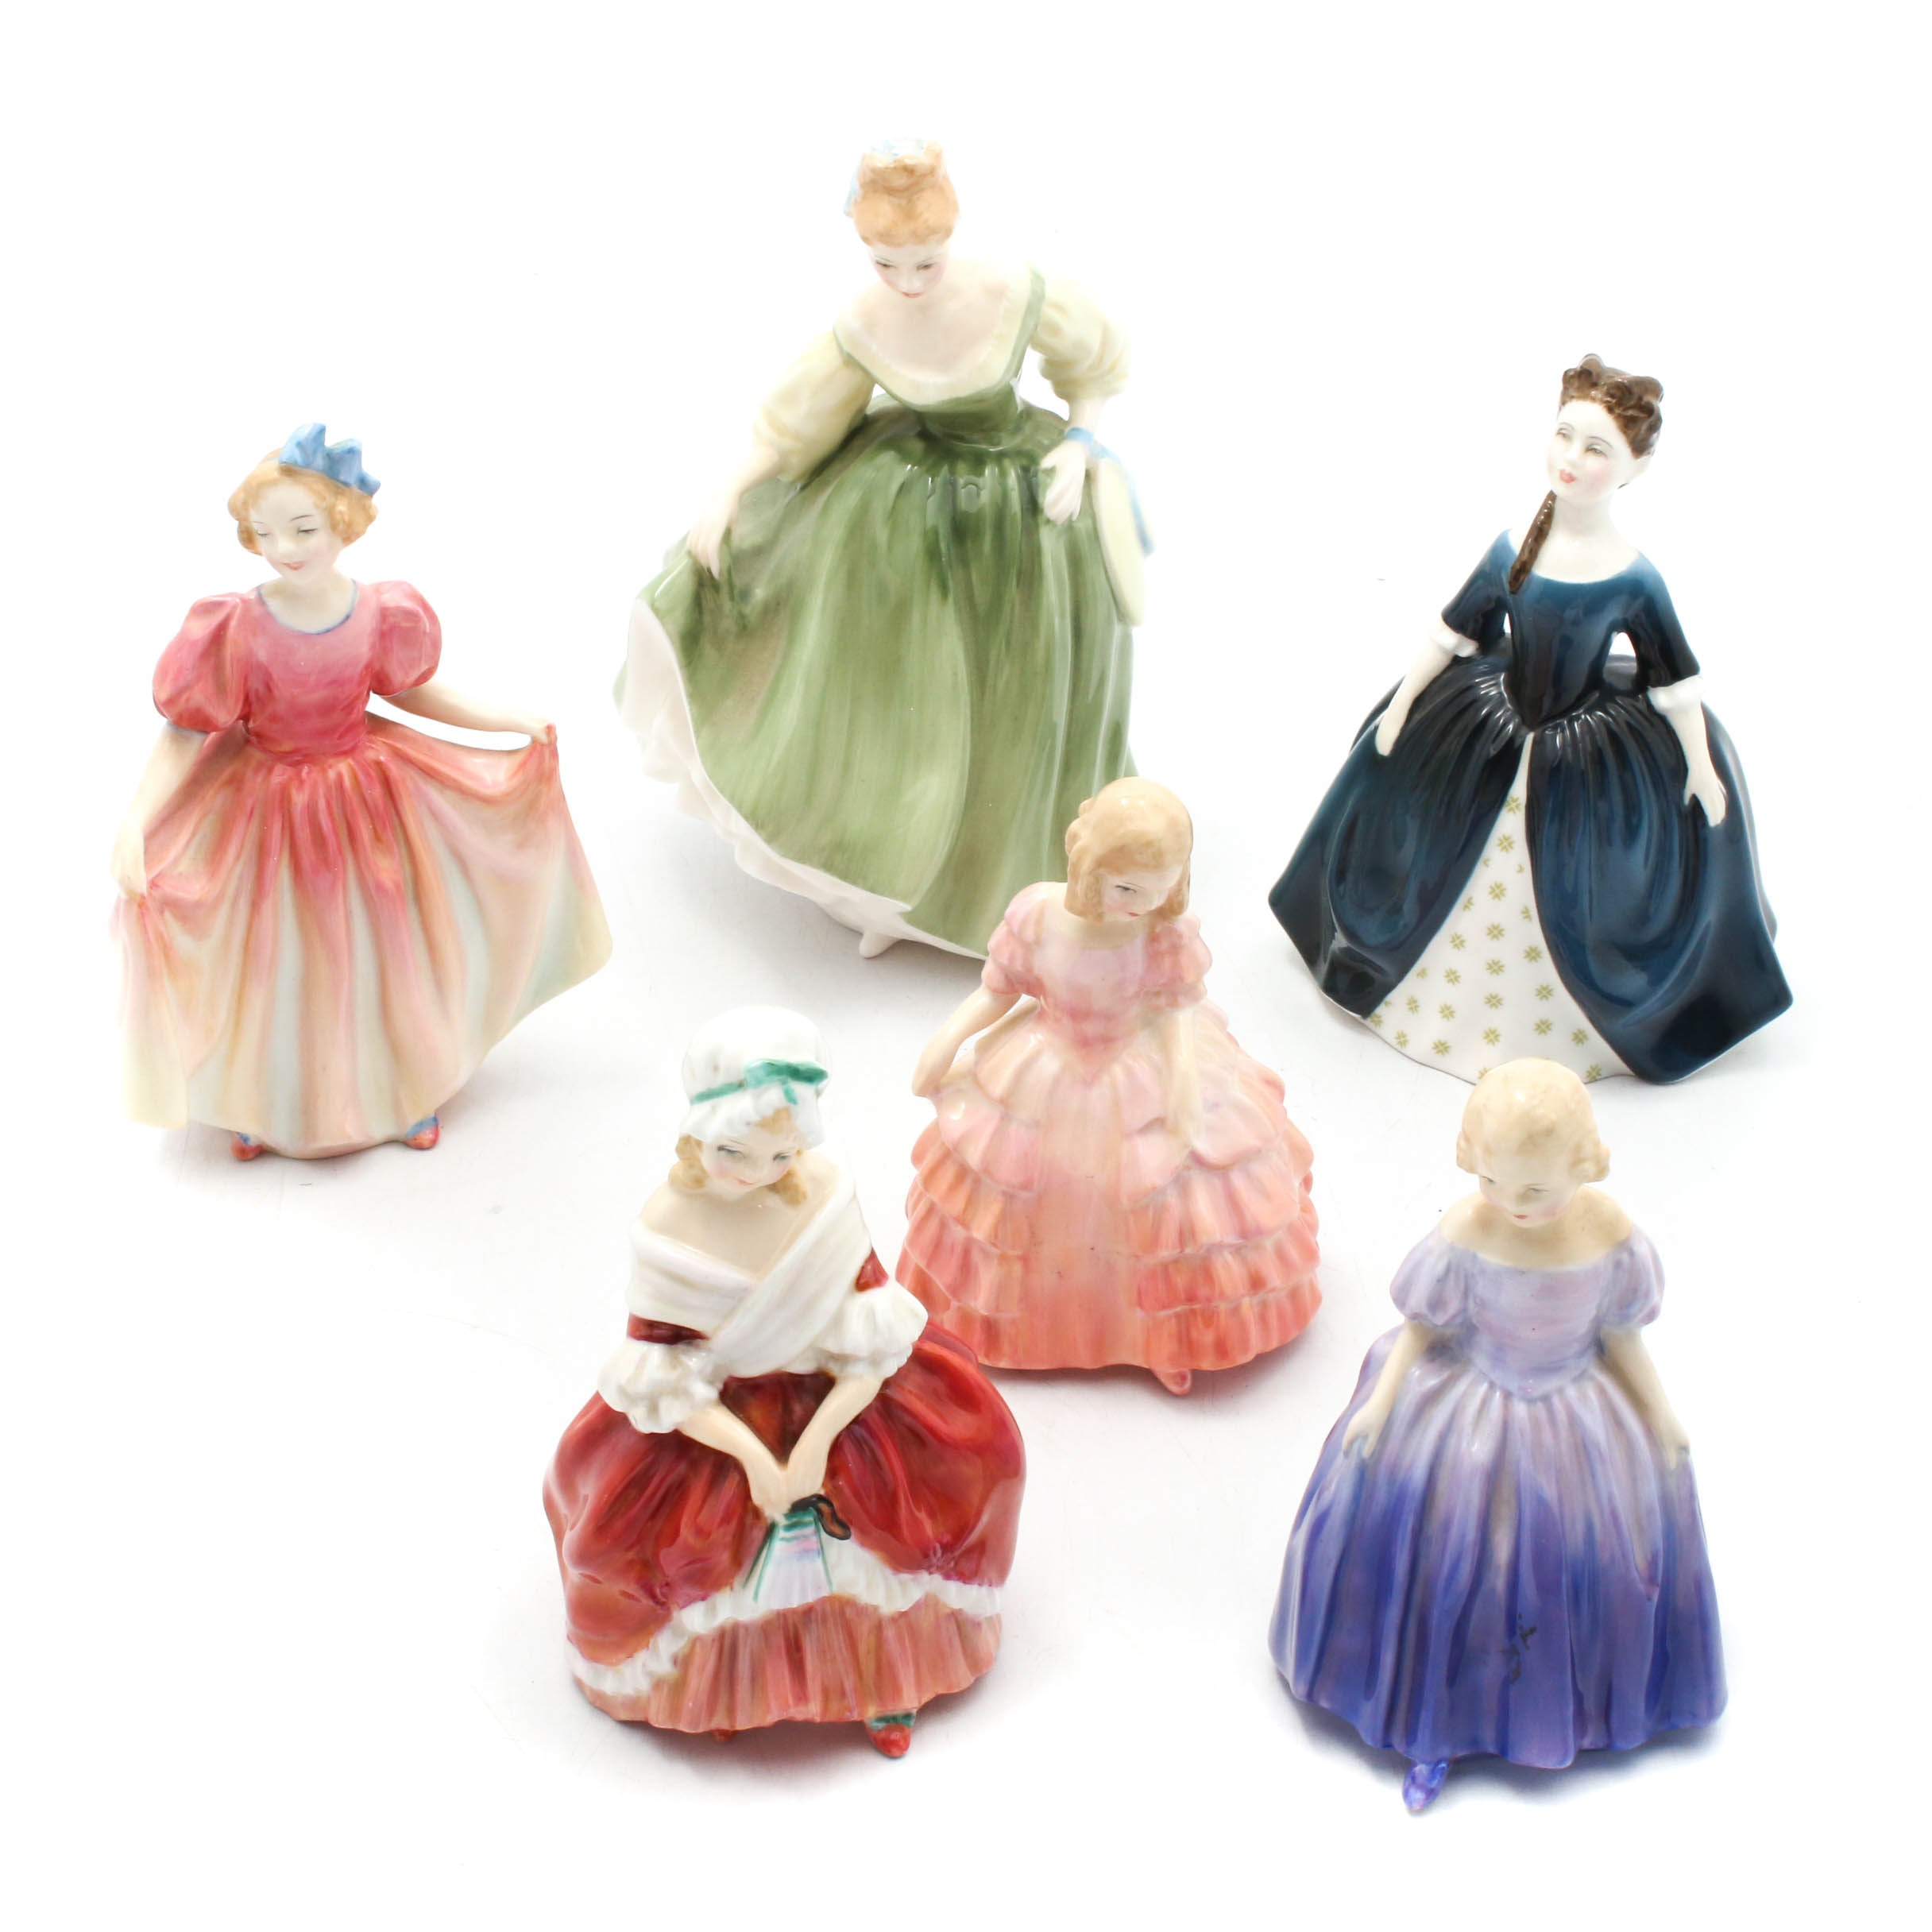 Royal Doulton Girls in Gowns Porcelain Figurines